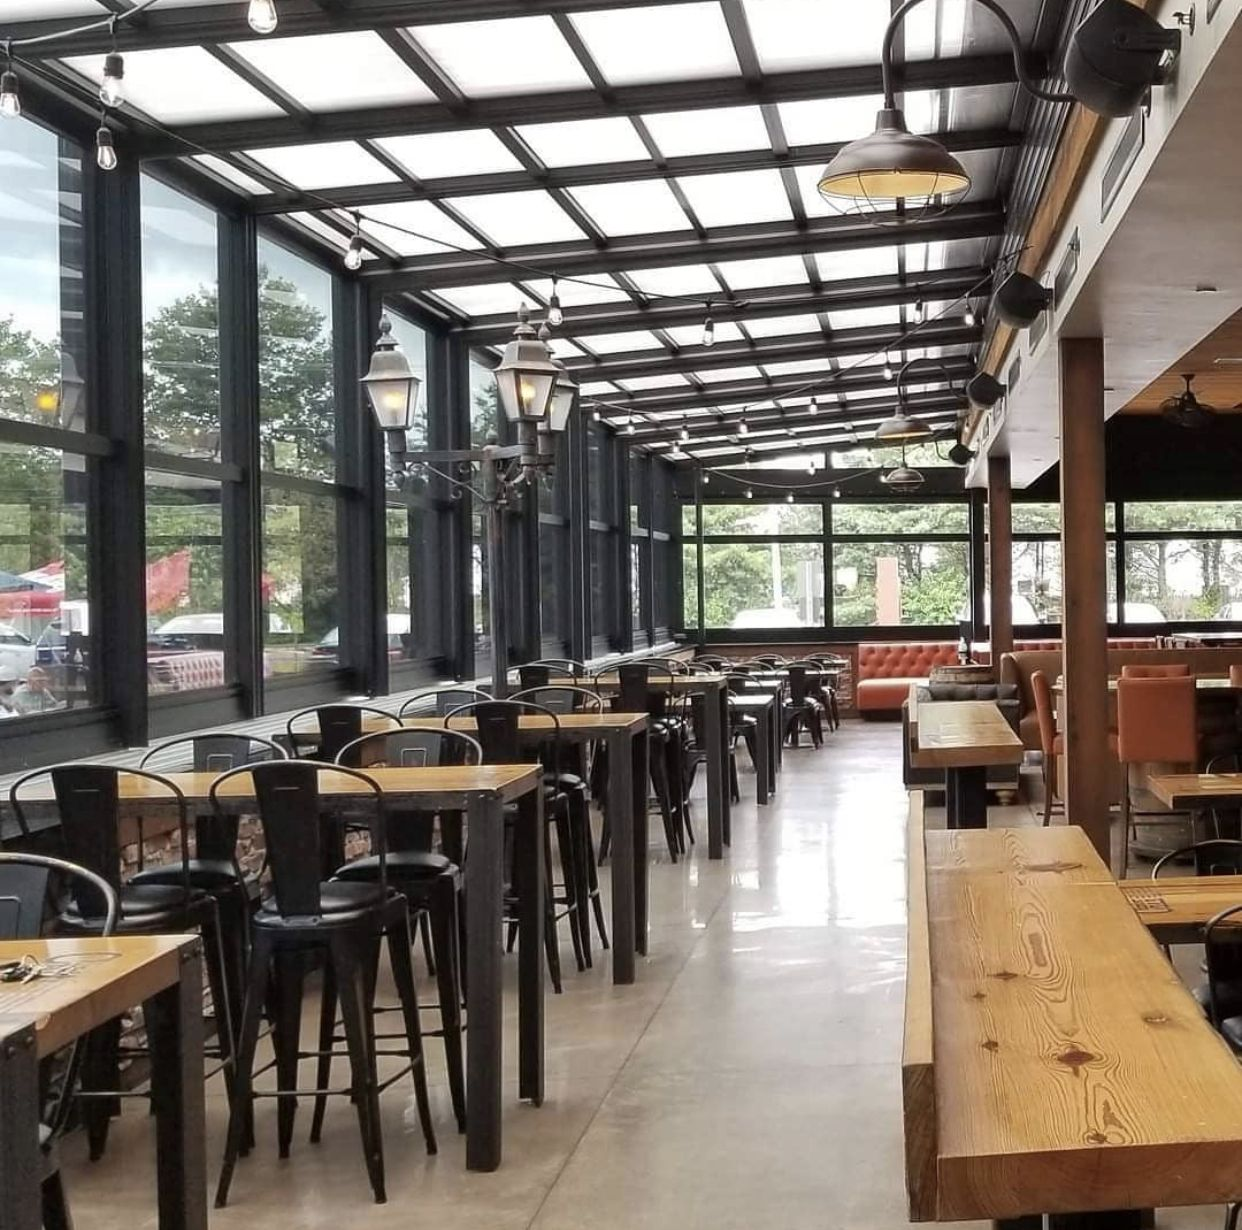 Prepare Your Outdoor Dining Space for 2021 with a Retractable Roof System